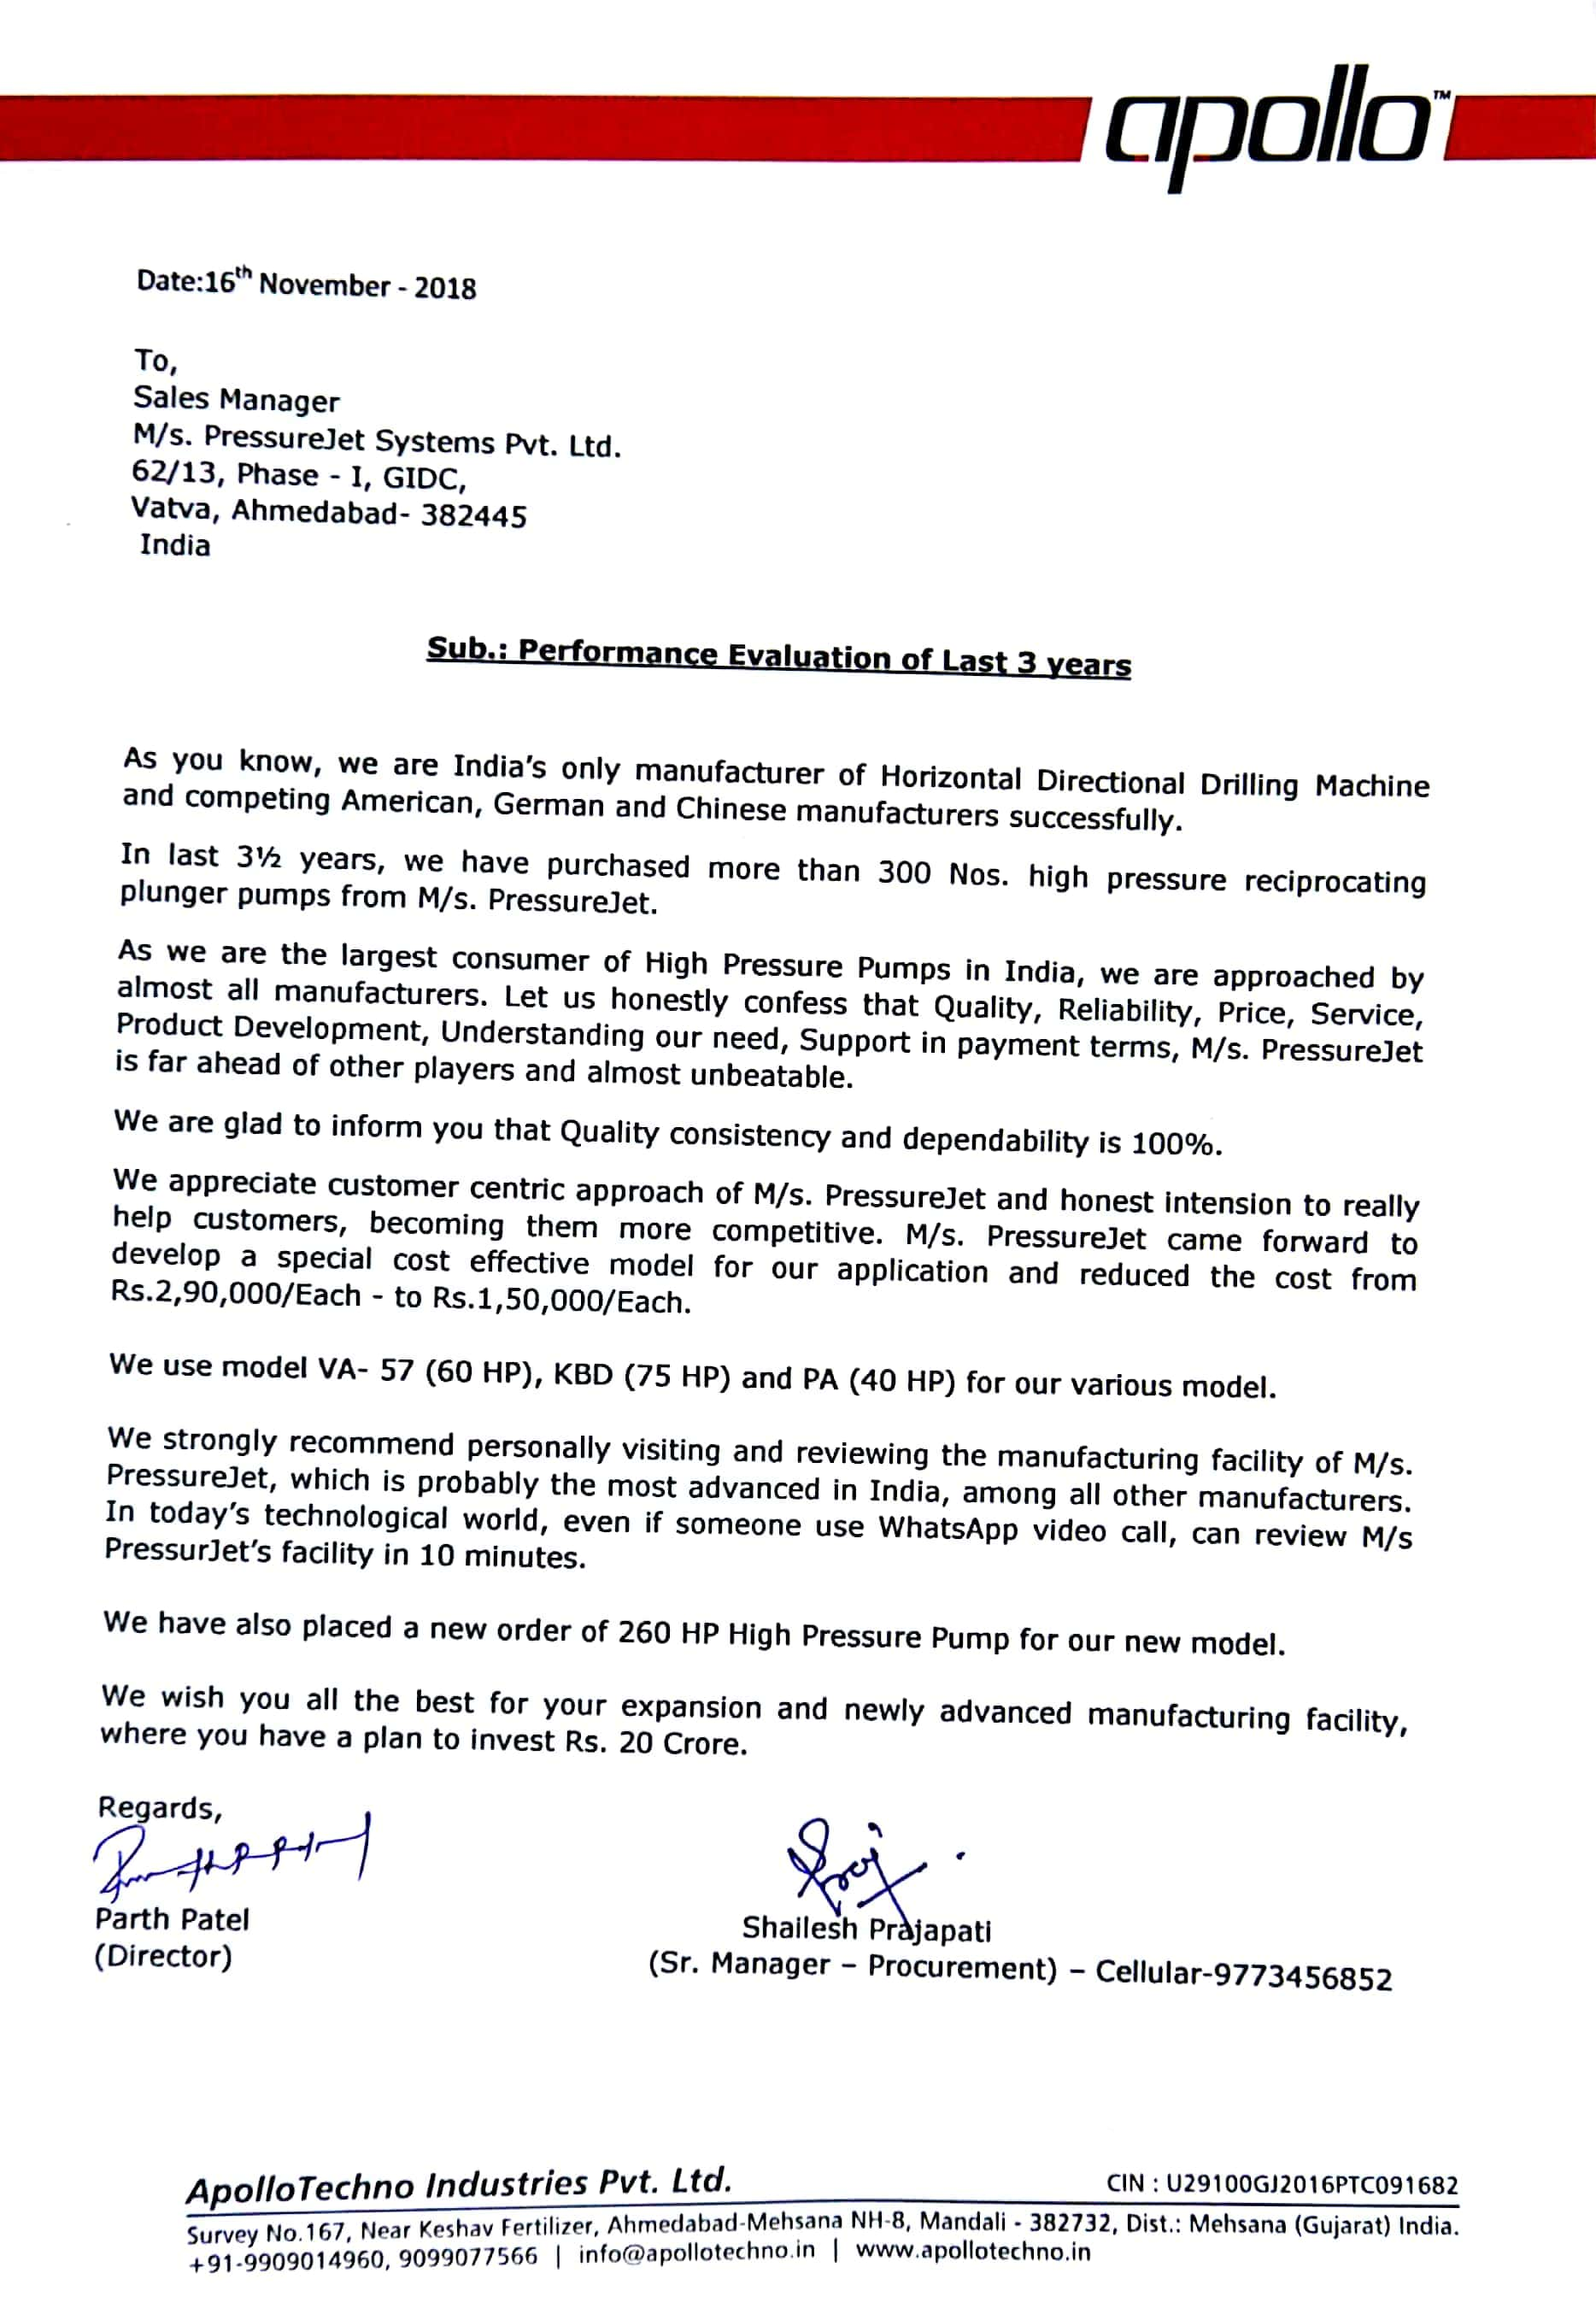 AppoloTechno Industries Pvt. Ltd. (Performance certificate)